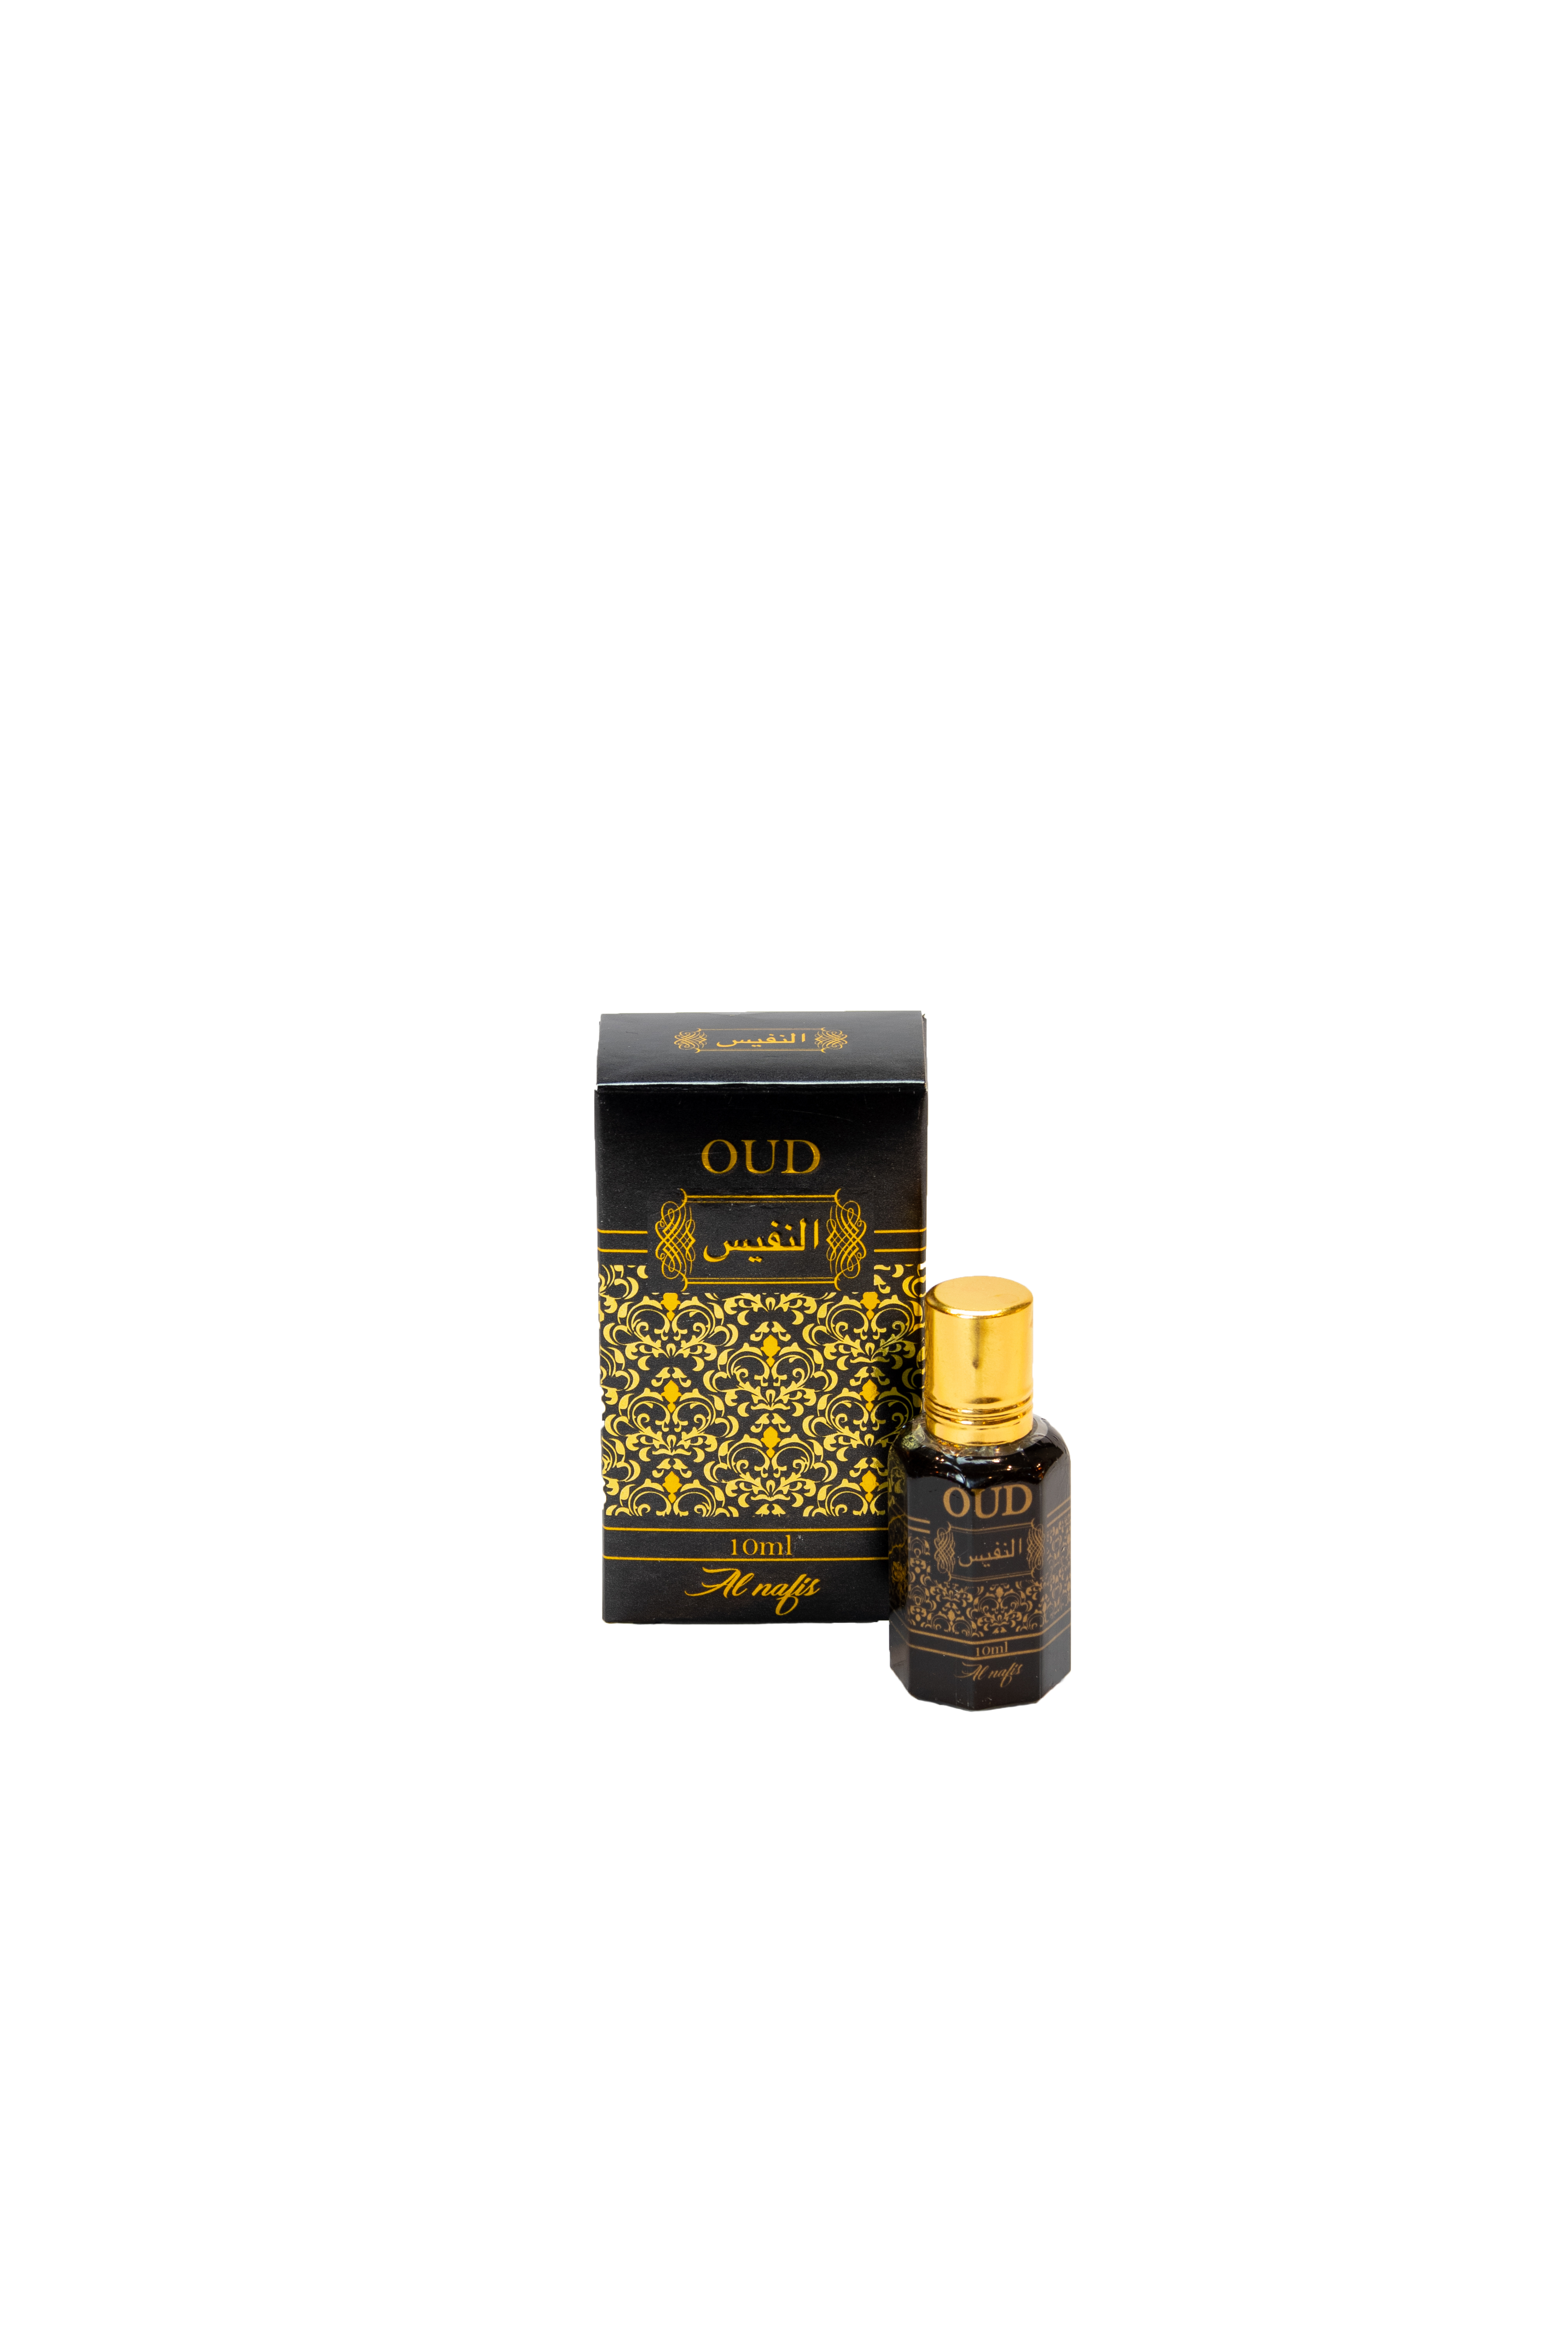 Buy Oud Al Nafis 10ml Concentrated Oil